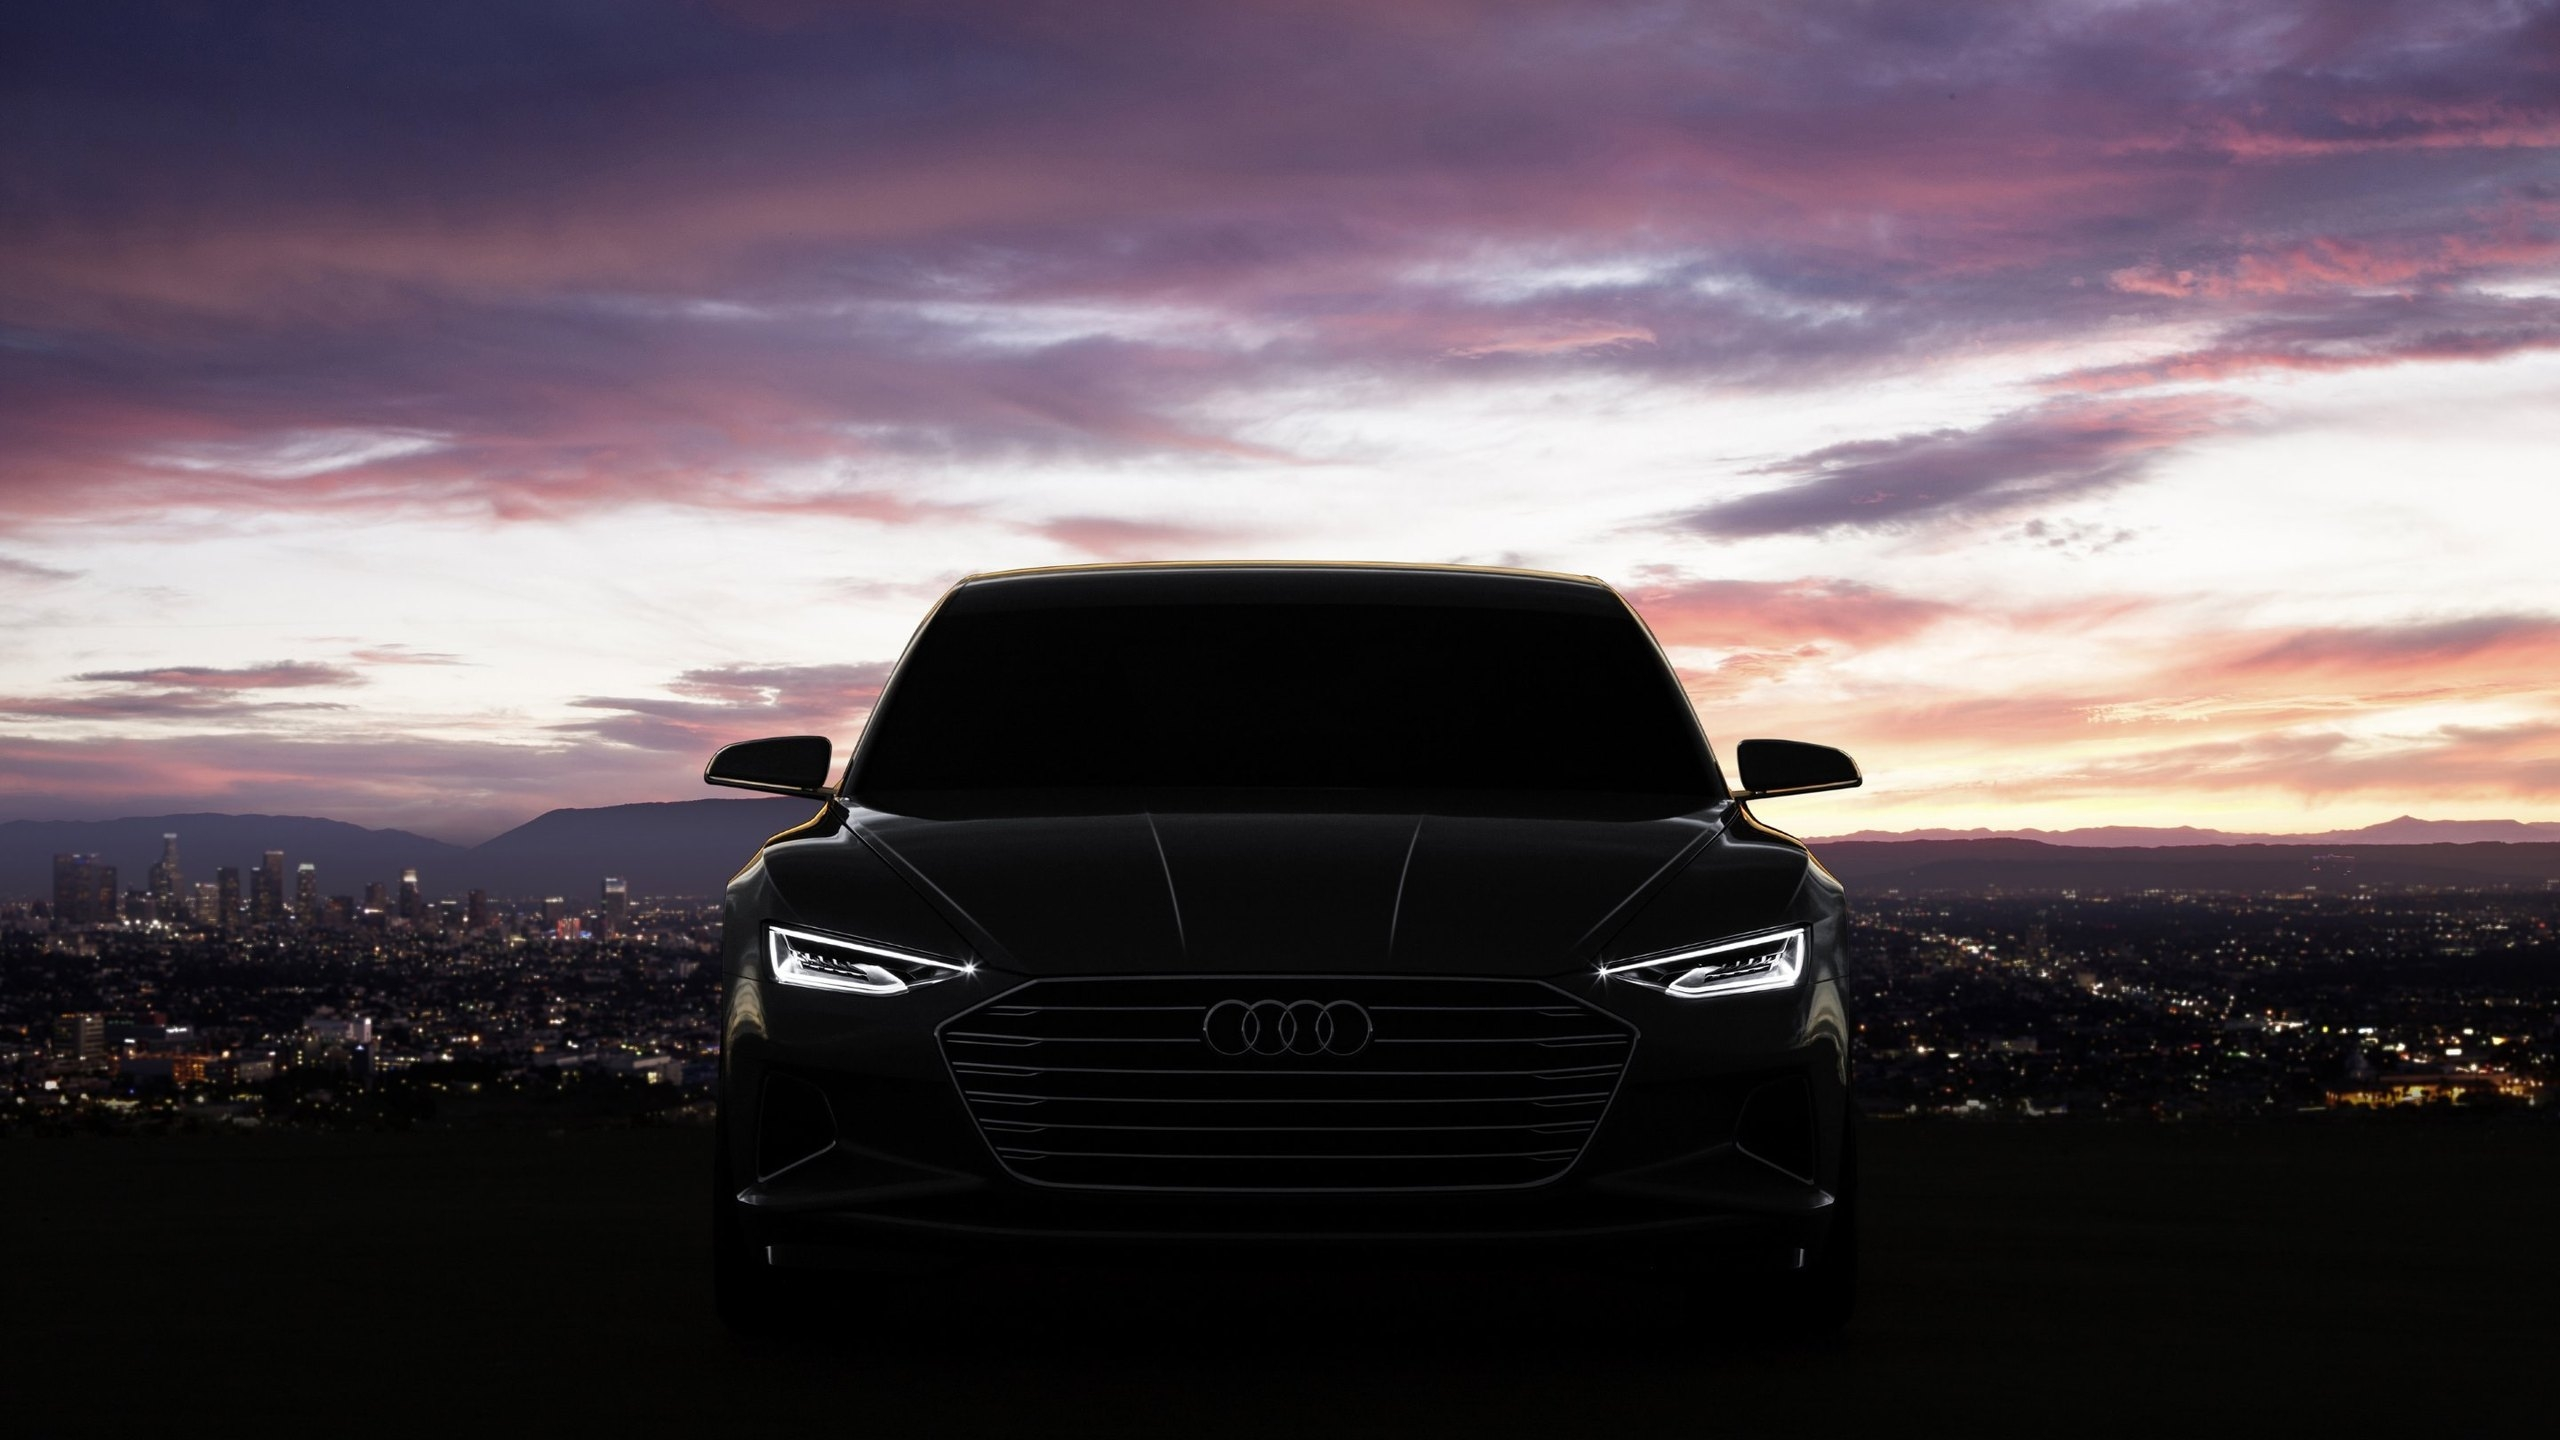 2560x1440 Audi Prologue Concept Desktop Pc And Mac Wallpaper